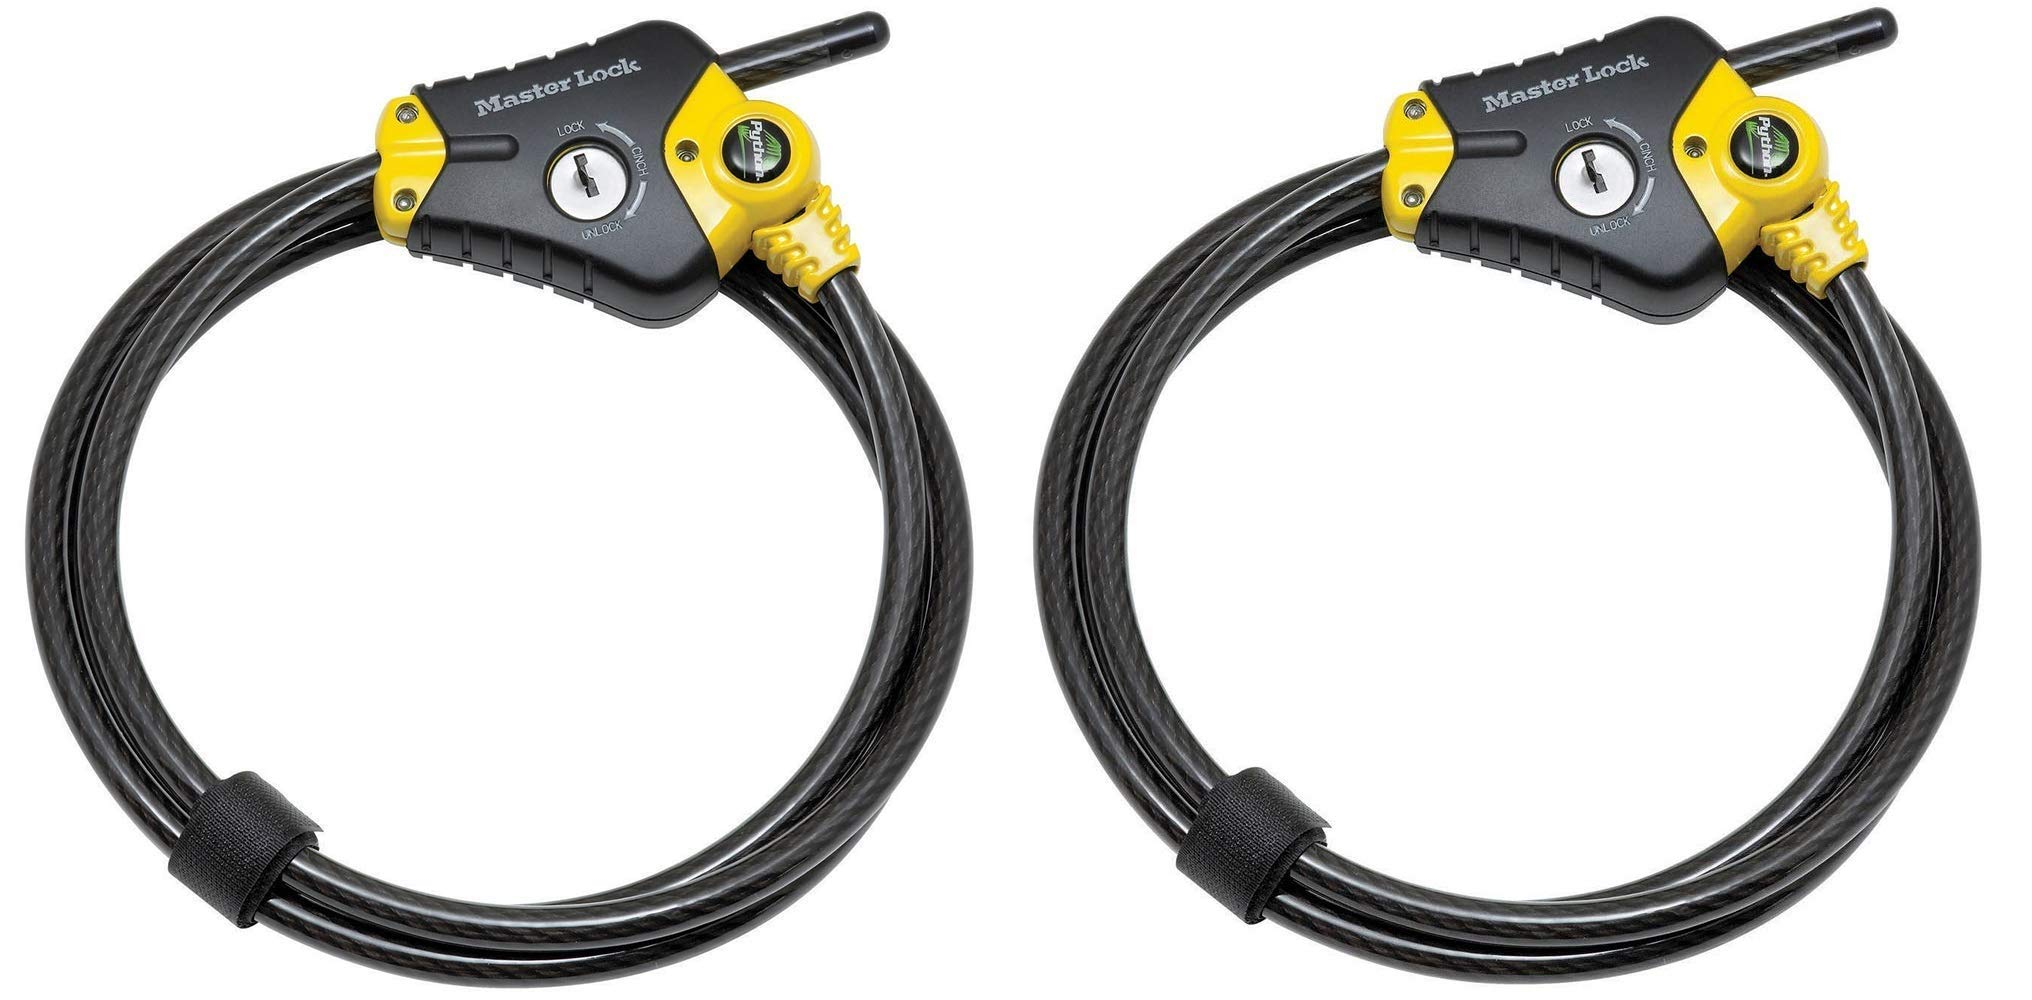 Master Lock Cable Lock, Python Adjustable Keyed Cable Lock, 6 ft. Long, 8413DPF (Pack of 2) by Master Lock